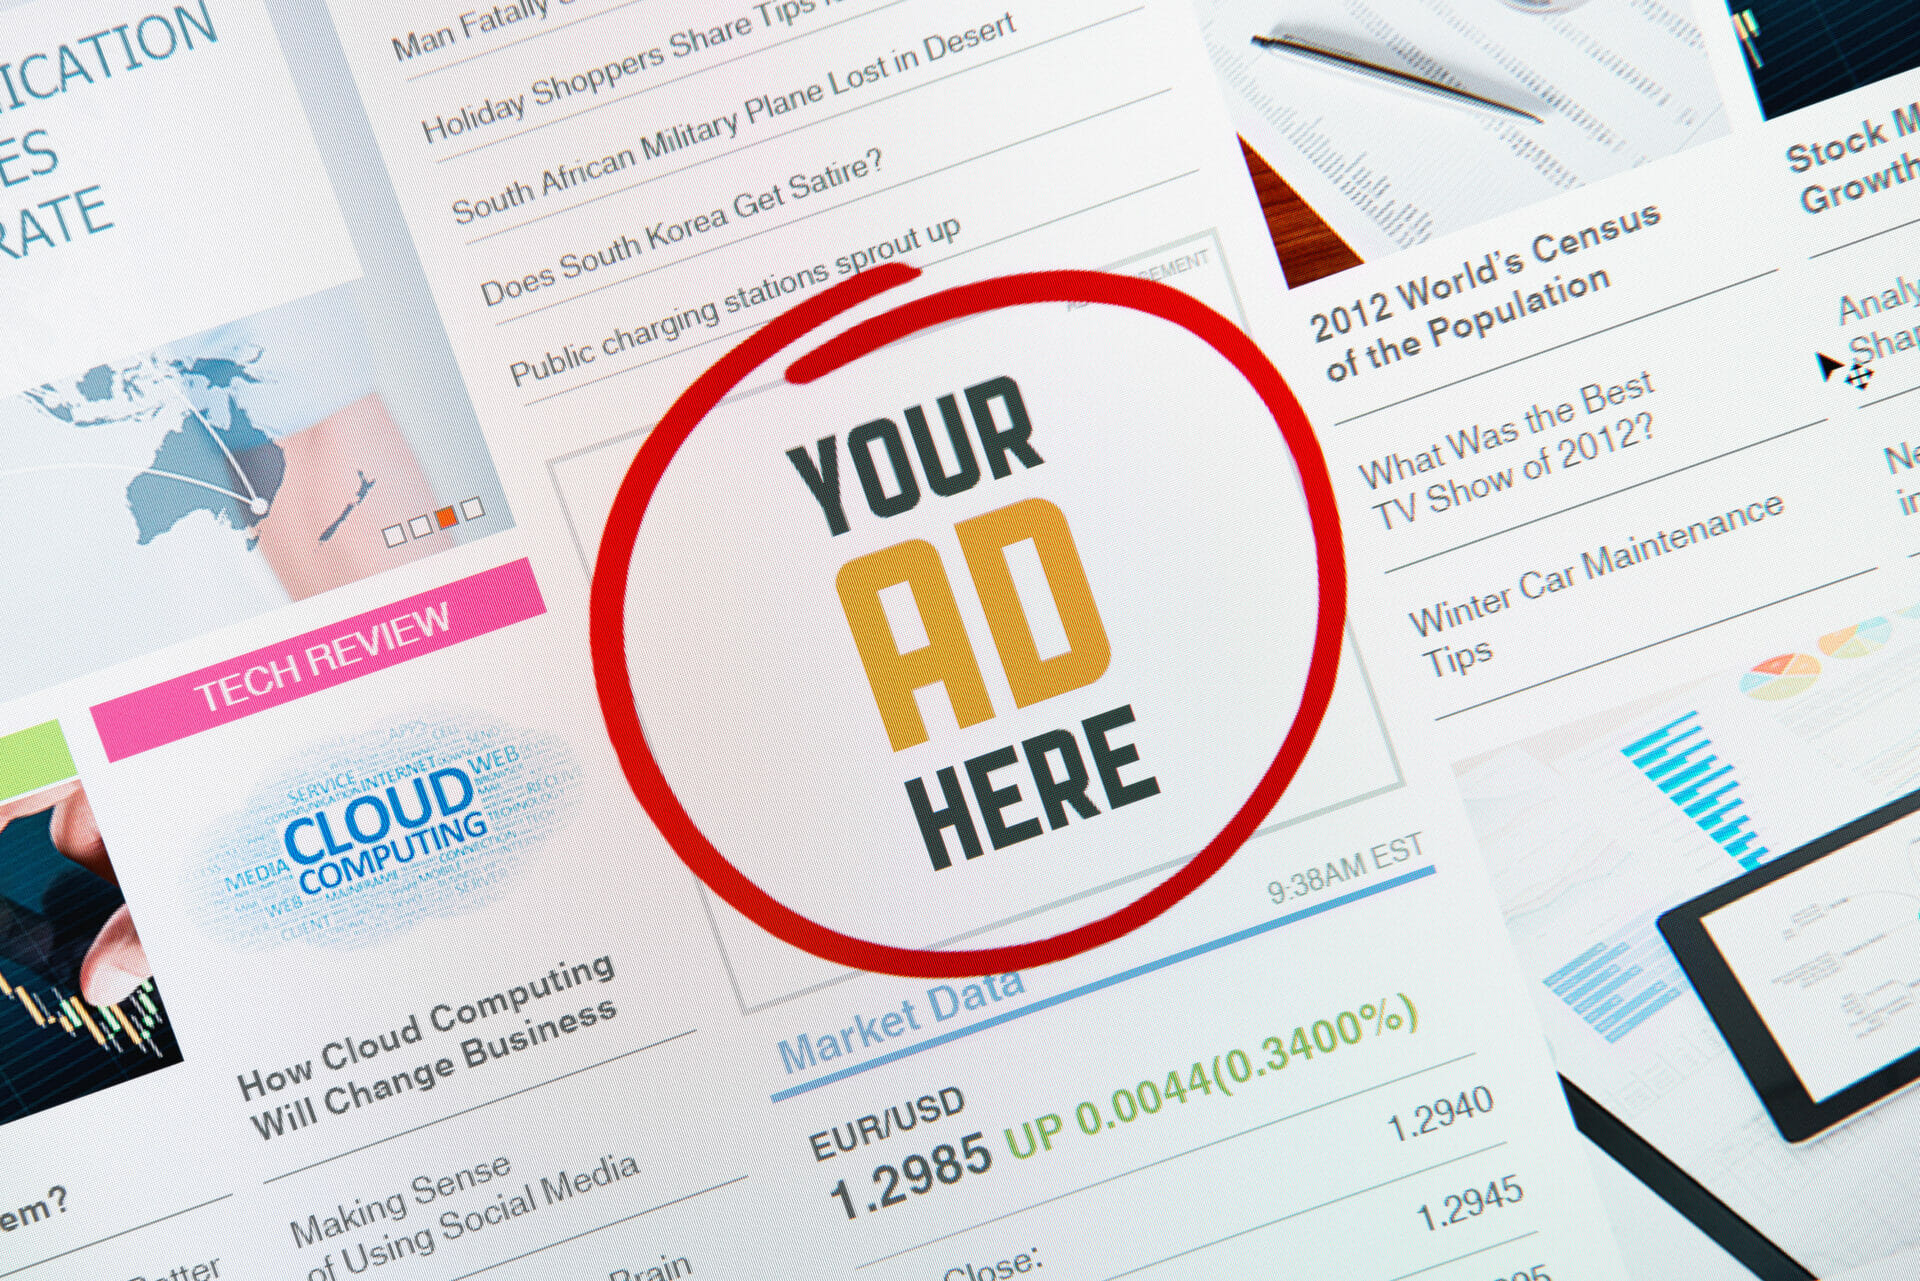 Ad fraud detection, Ad fraud prevention, Media buying tips